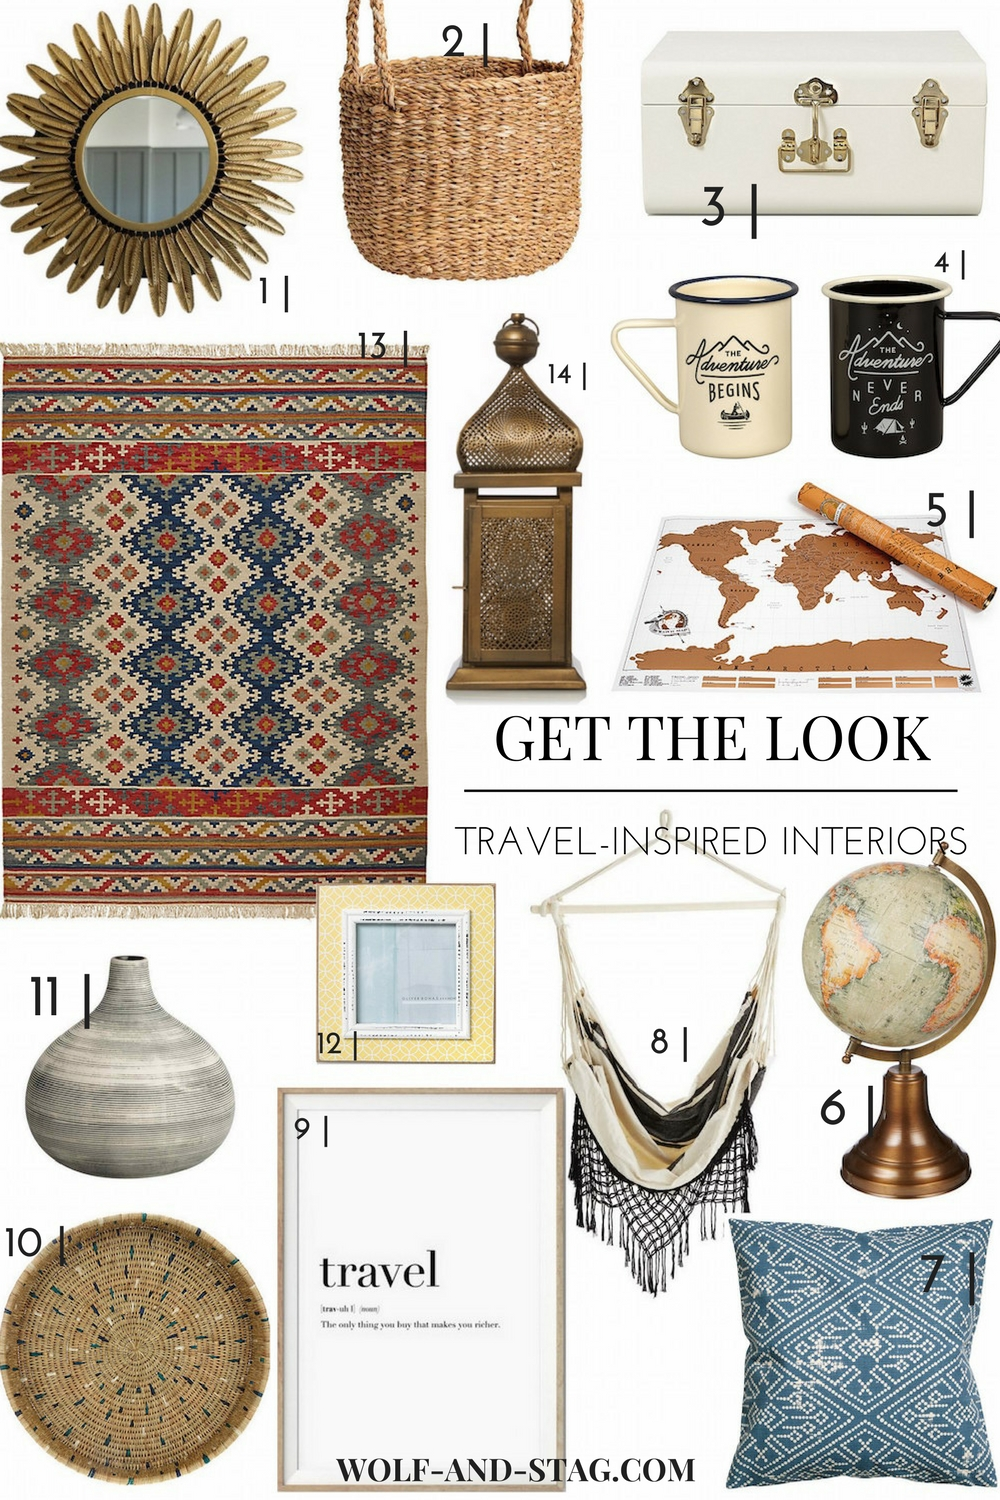 Get the Look: Travel-Inspired Interiors | Wolf & Stag